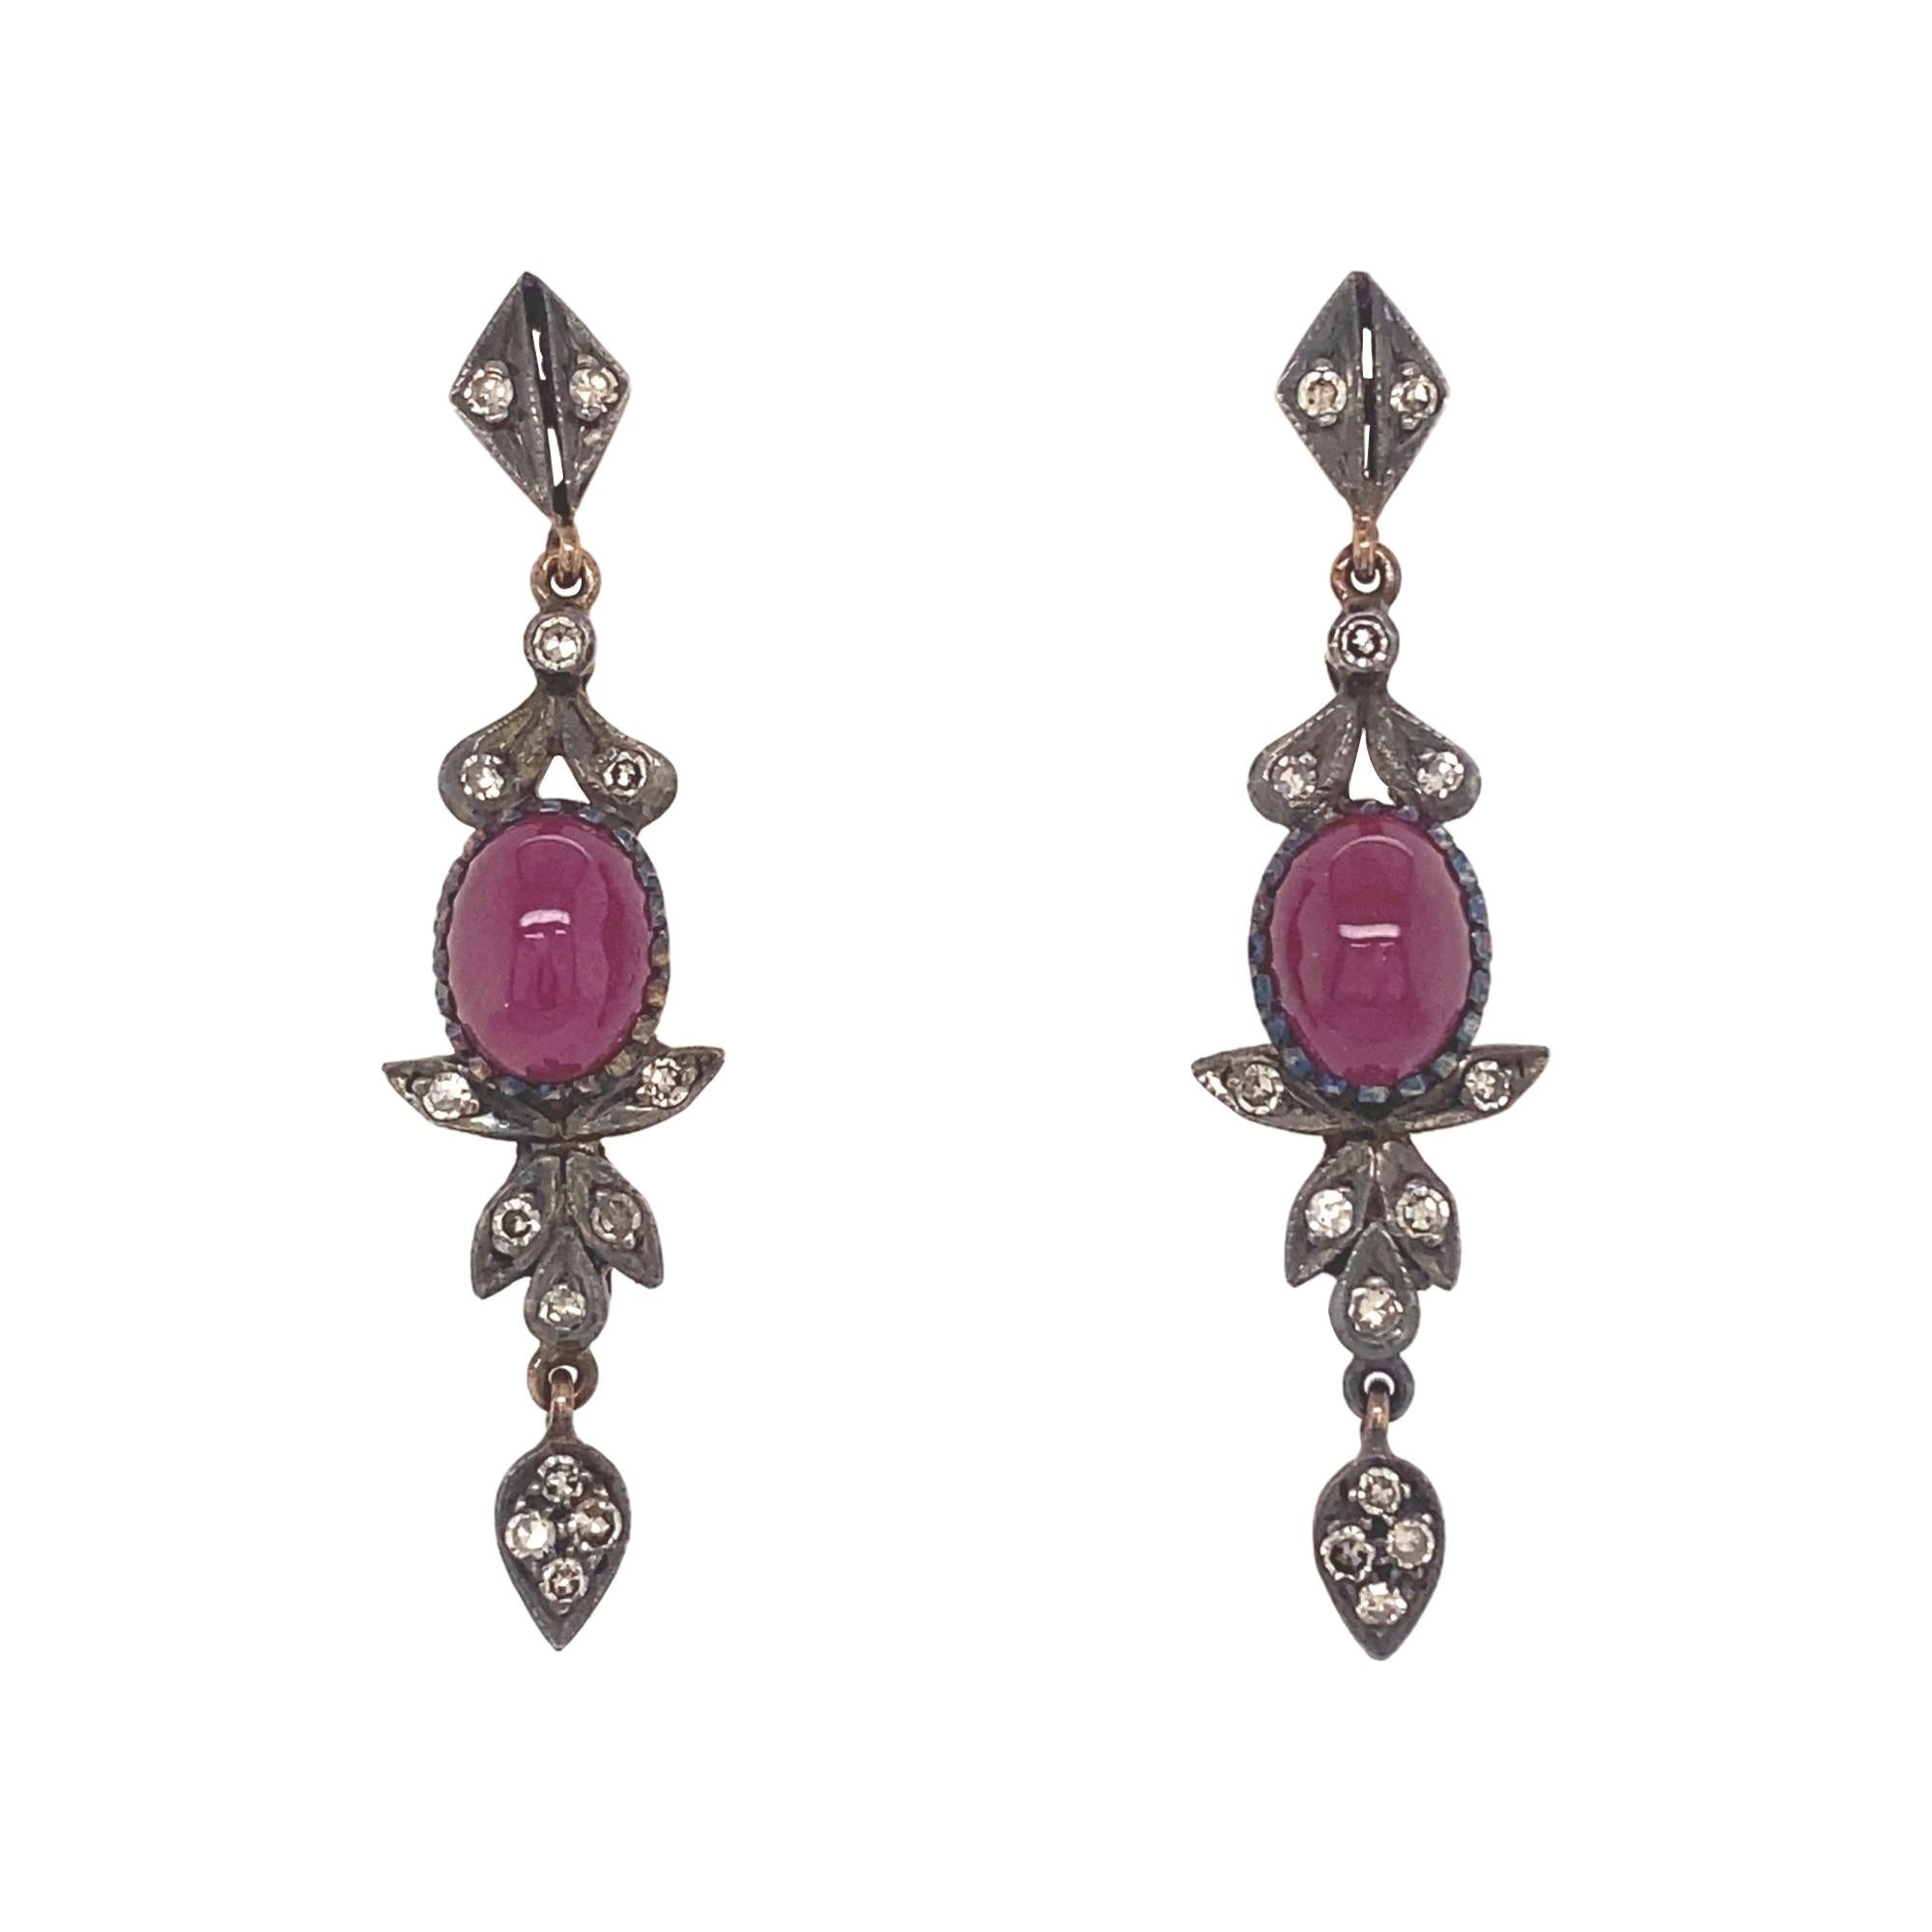 Antique Victorian Cabochon Ruby Diamonds Silver 18k Yellow Gold Earrings